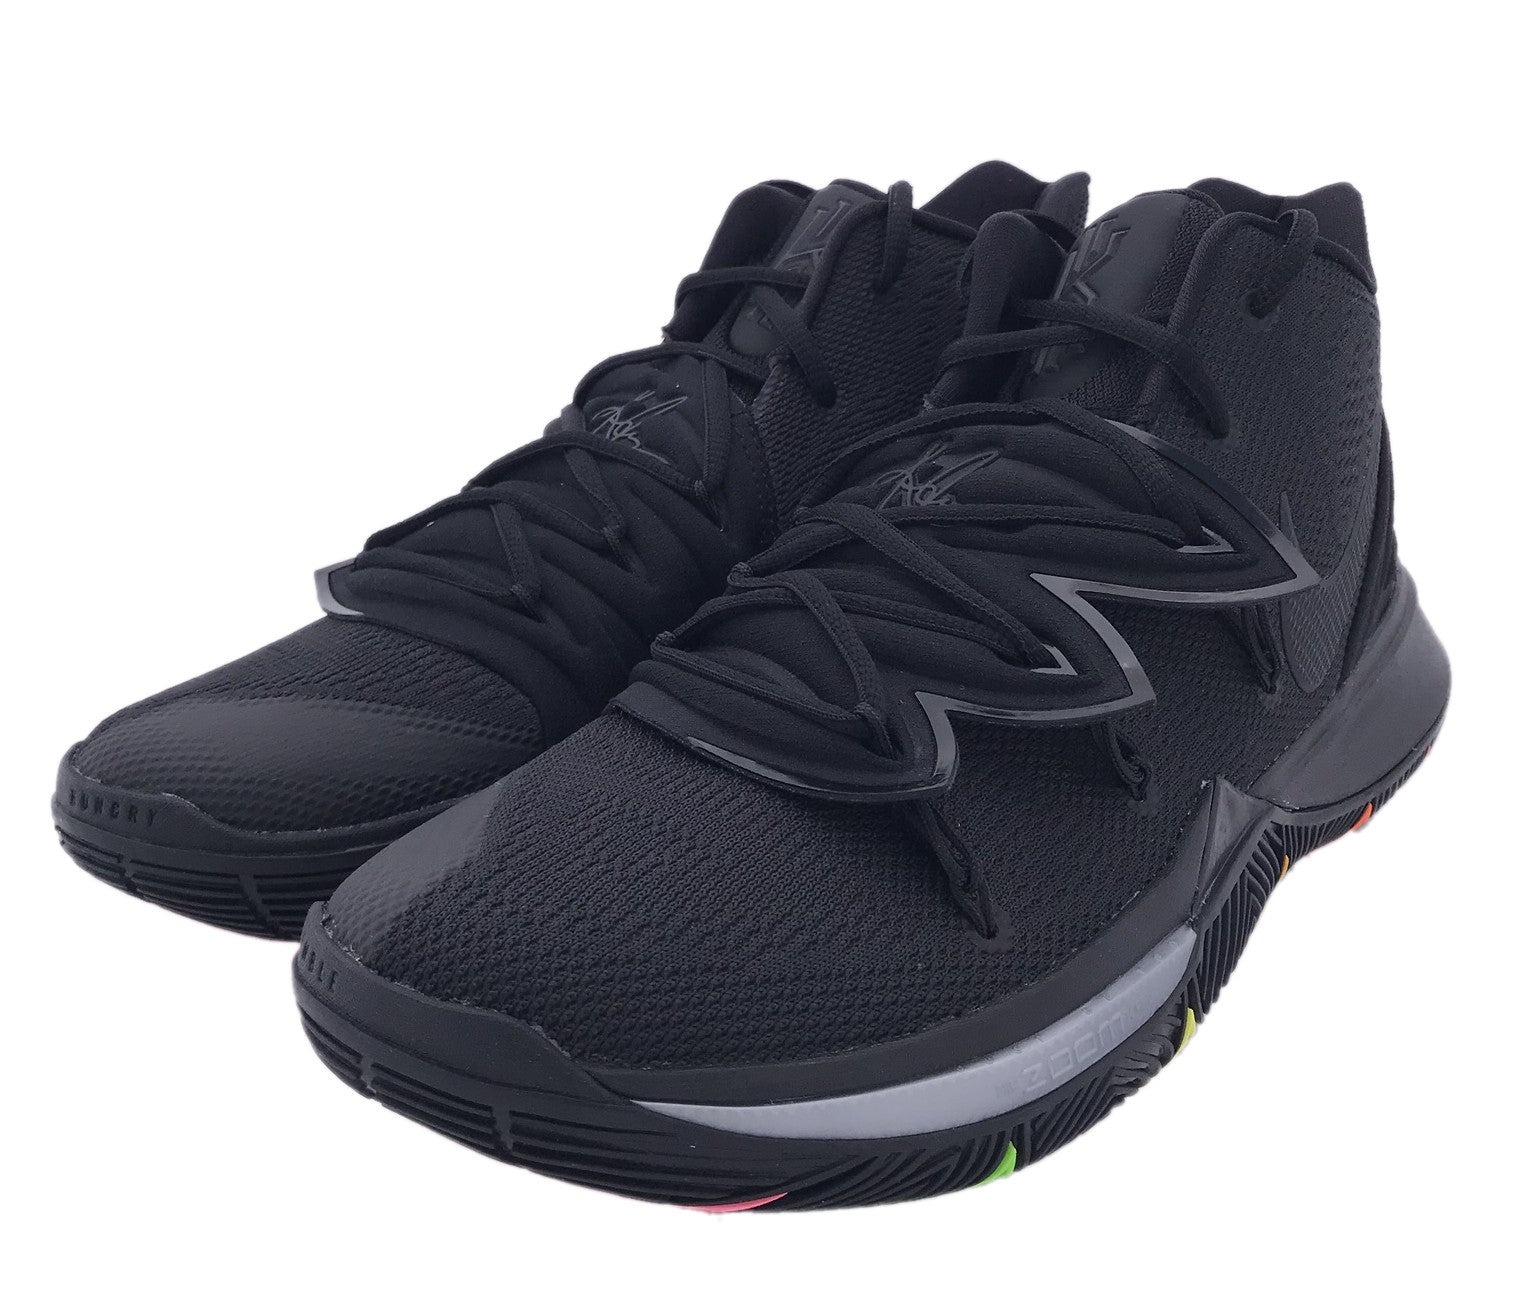 Nike Kyrie 5 Basketball Boot/Shoe - Black/Black/Black